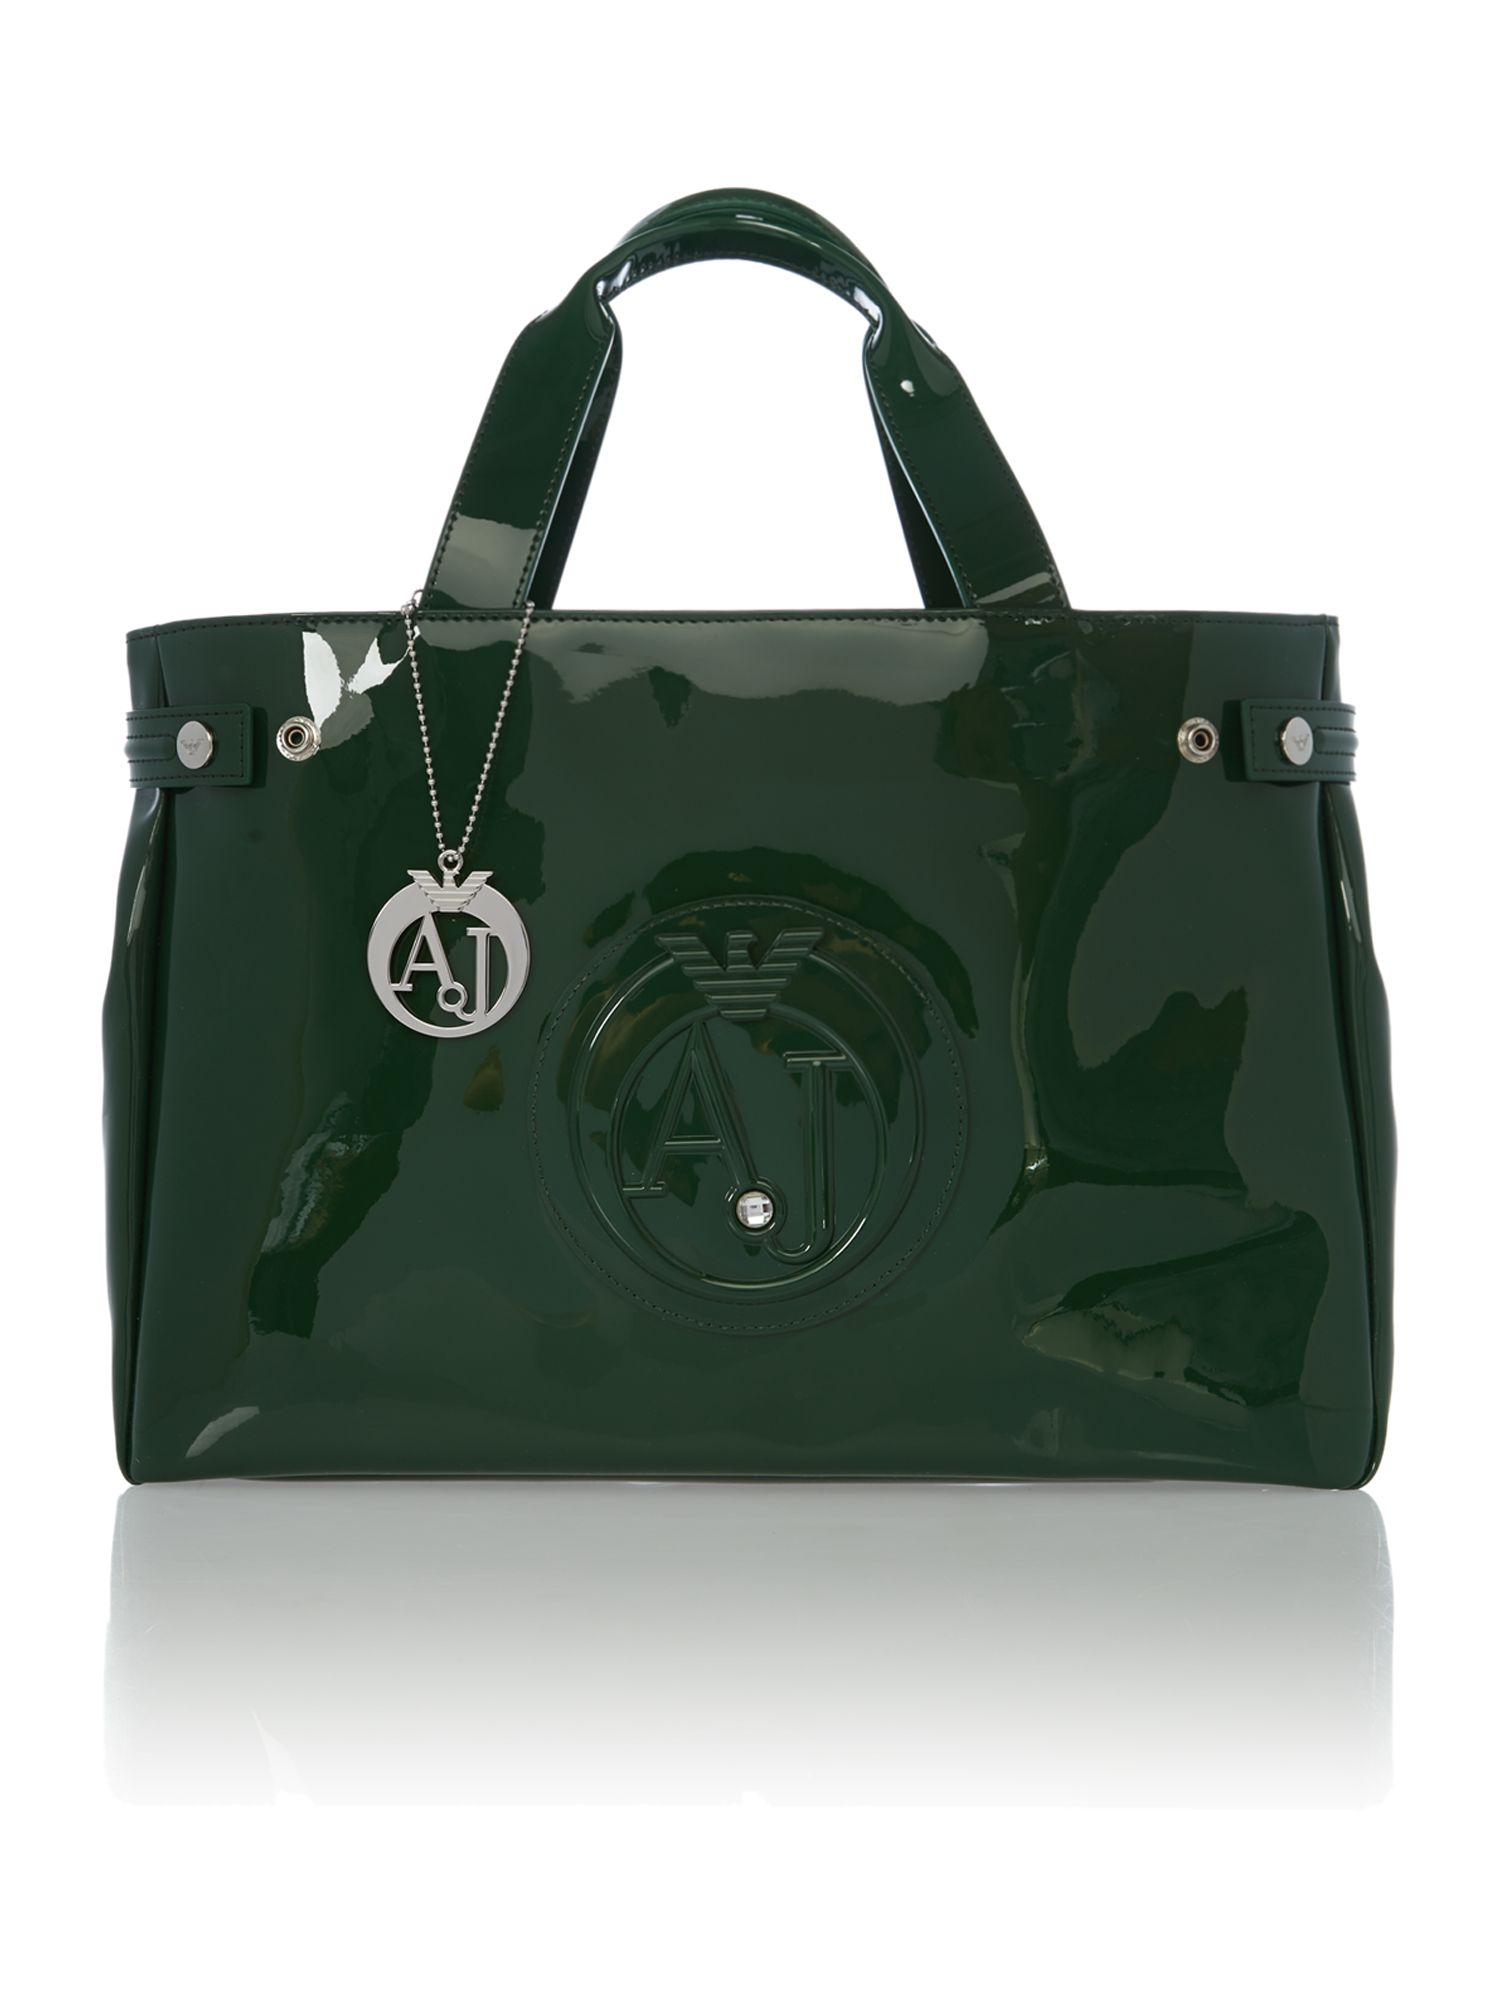 Green patent medium tote bag